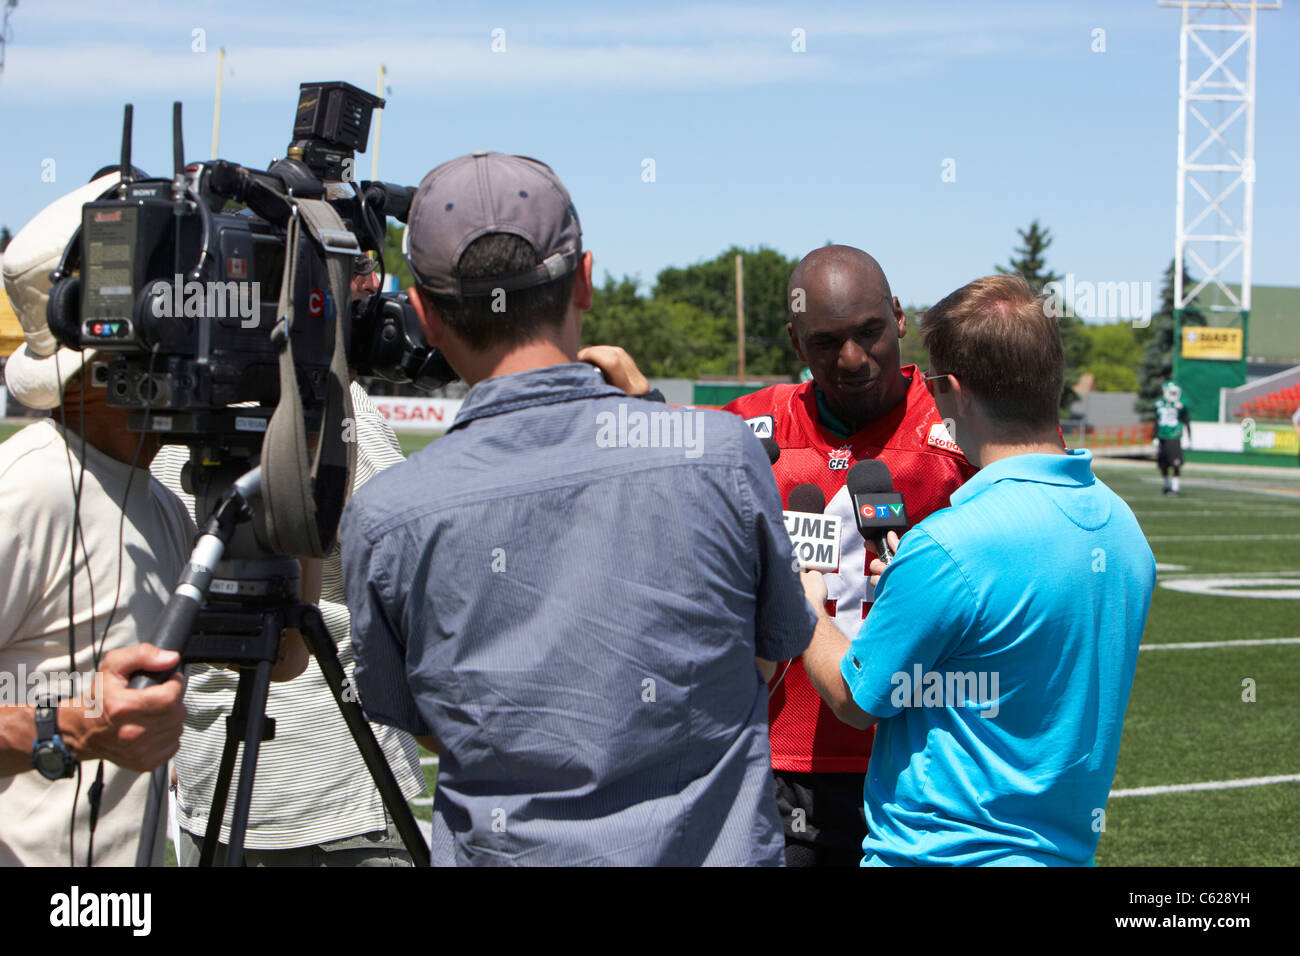 saskatchewan roughriders quarterback darian durant being interviewed during pre season training mosaic stadium taylor - Stock Image